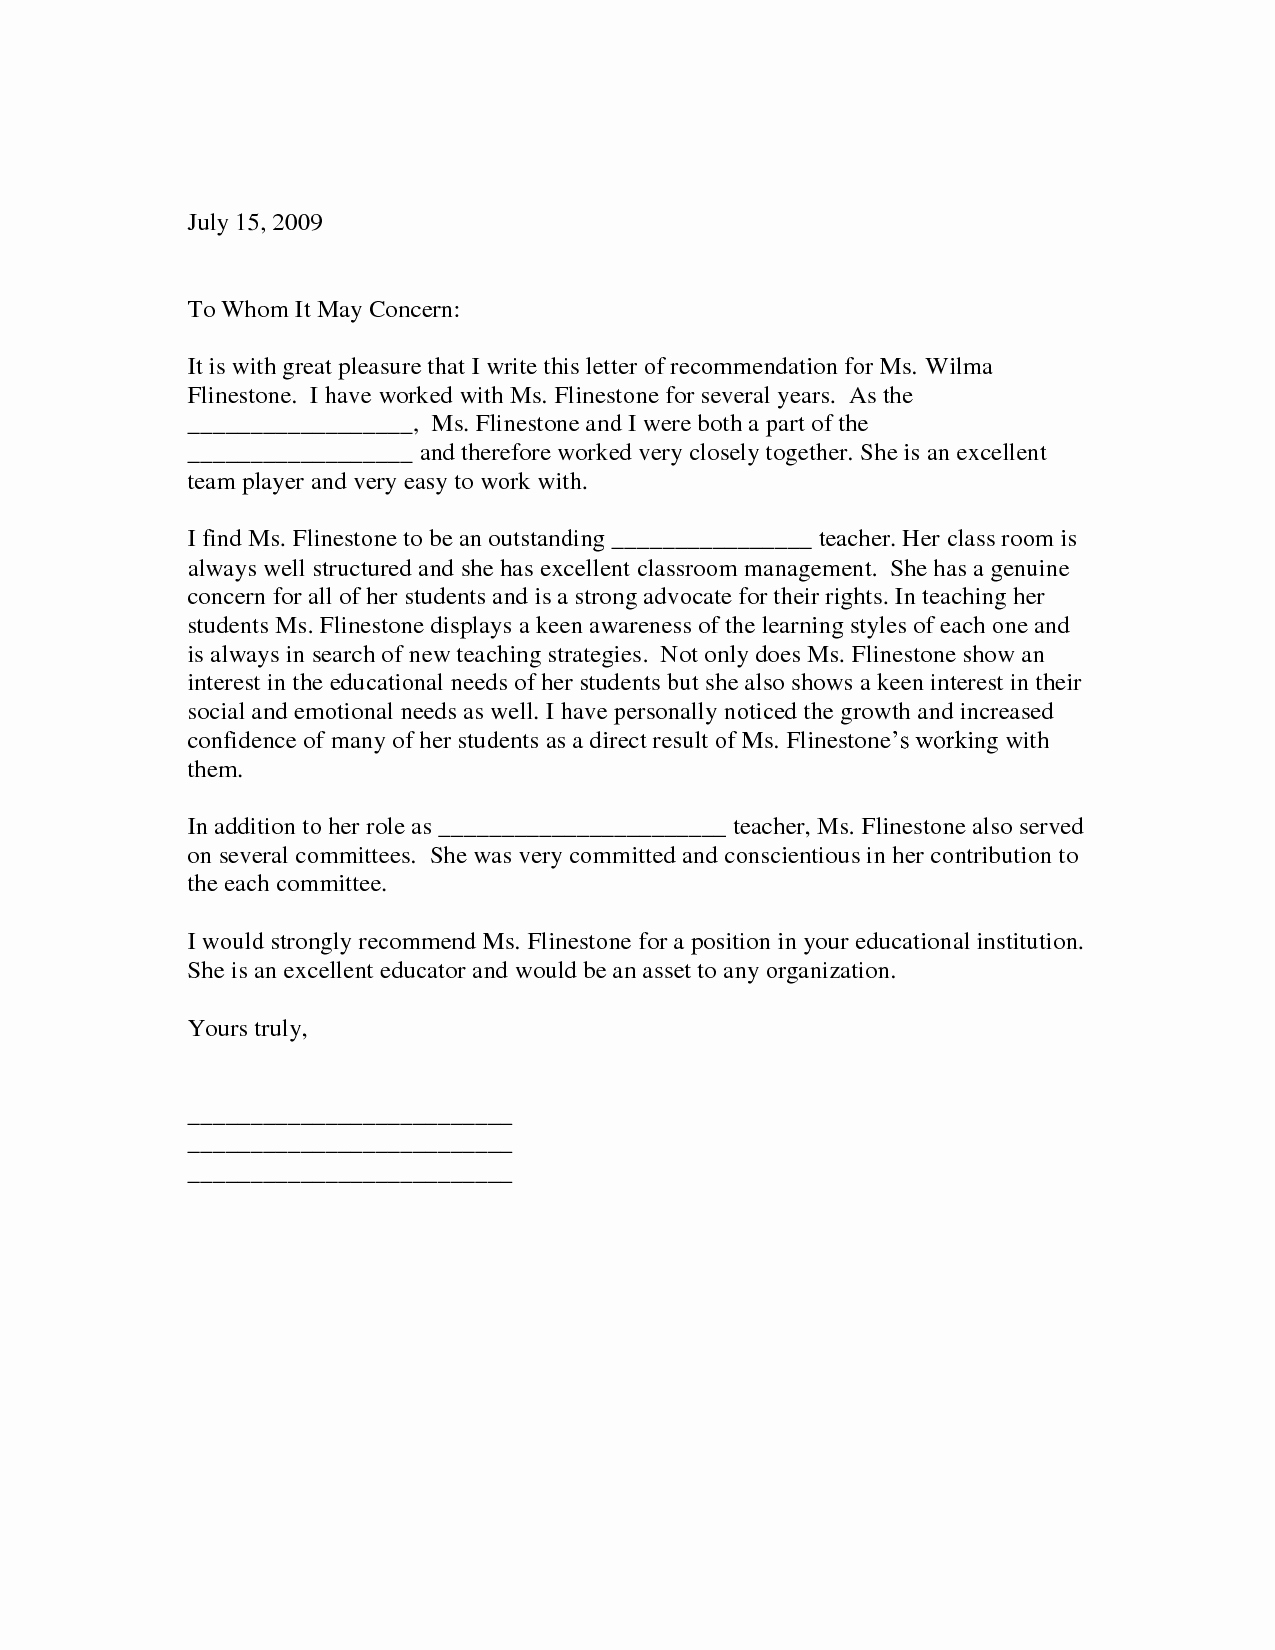 Student Recommendation Letter From Teacher Unique Sample Letter Of Re Mendation for Teacher